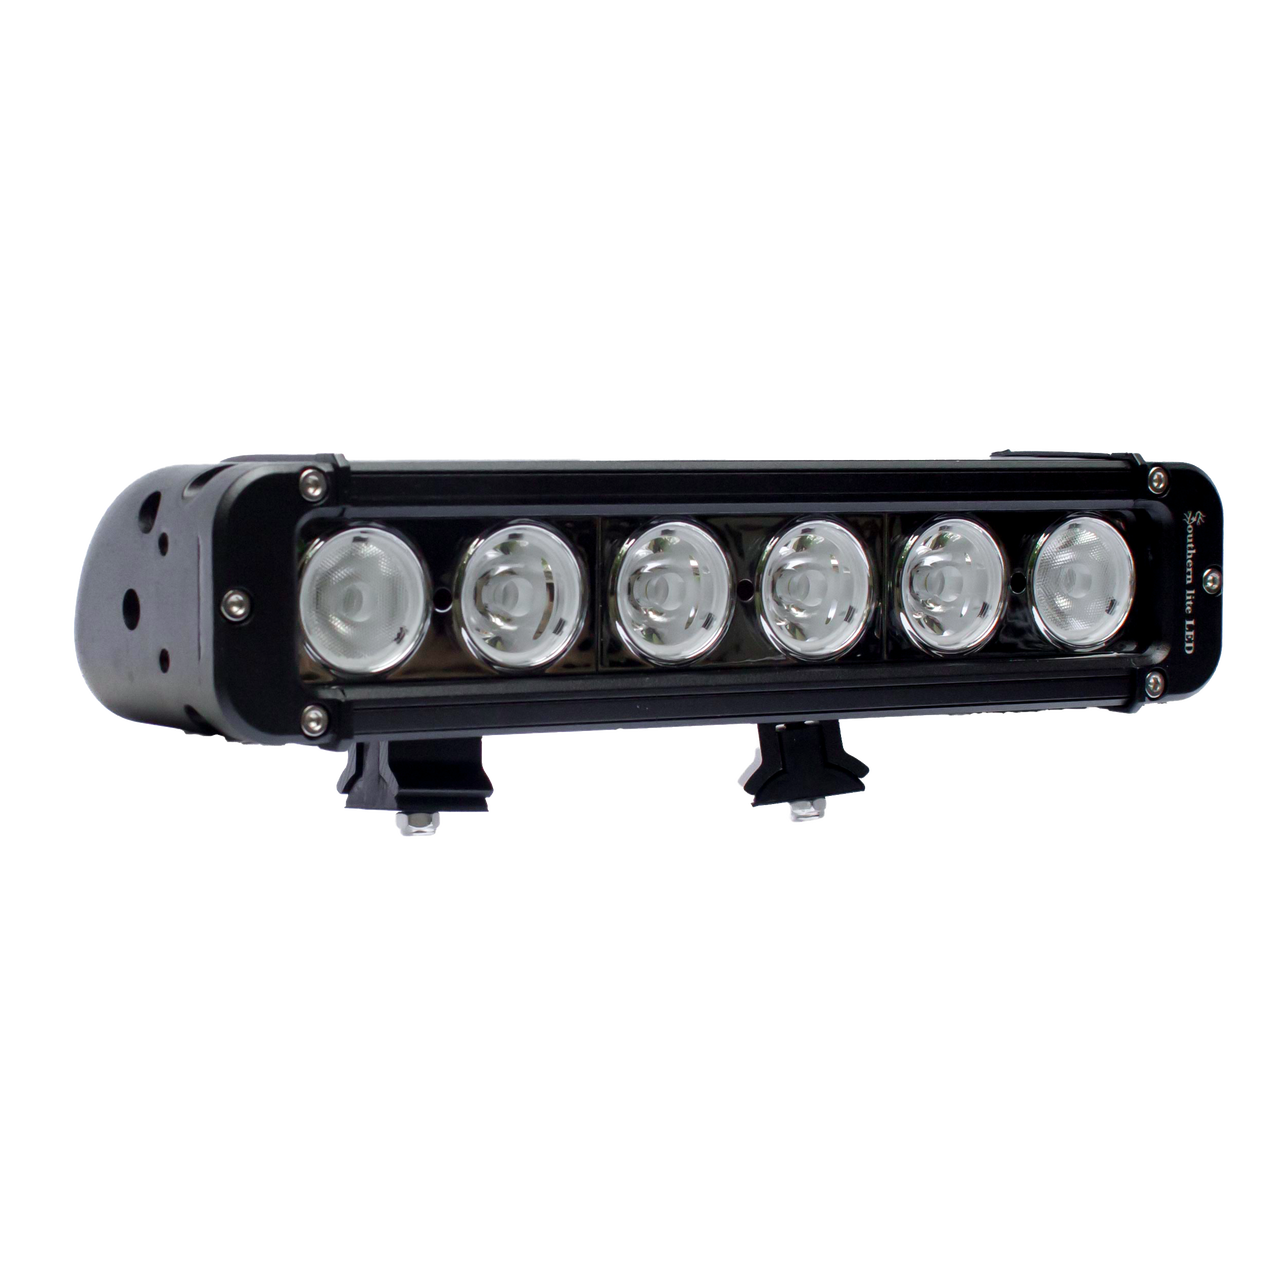 "Southern lite LED 11"" (60 Watt) Single Row LED Light Bar, with slide track mounting and wire harness."